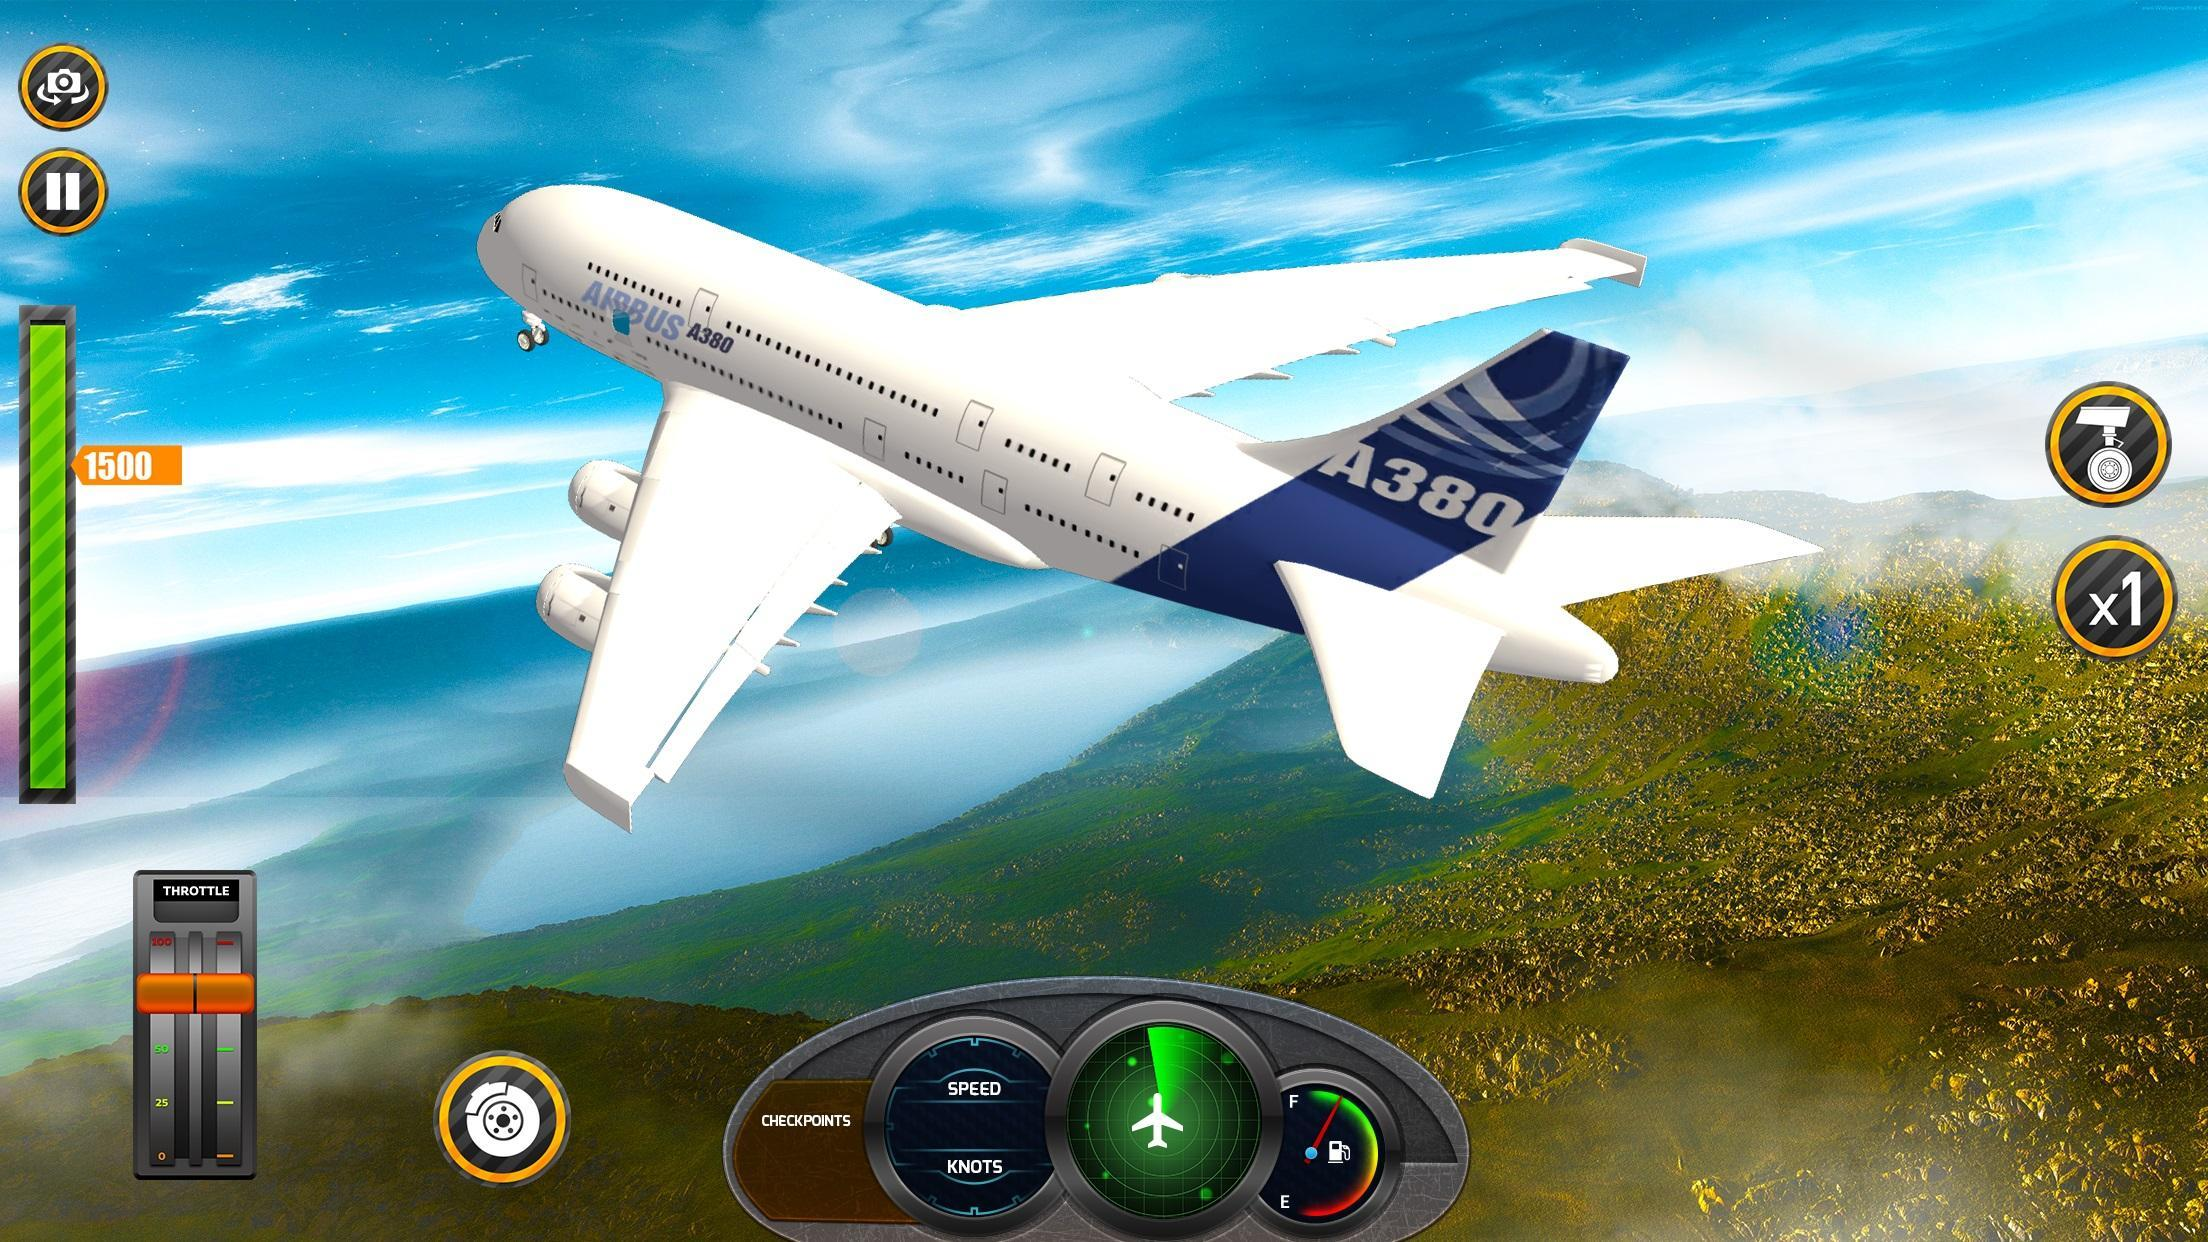 Airplane Real Flight Simulator 2020 Plane Games 5.4 Screenshot 7